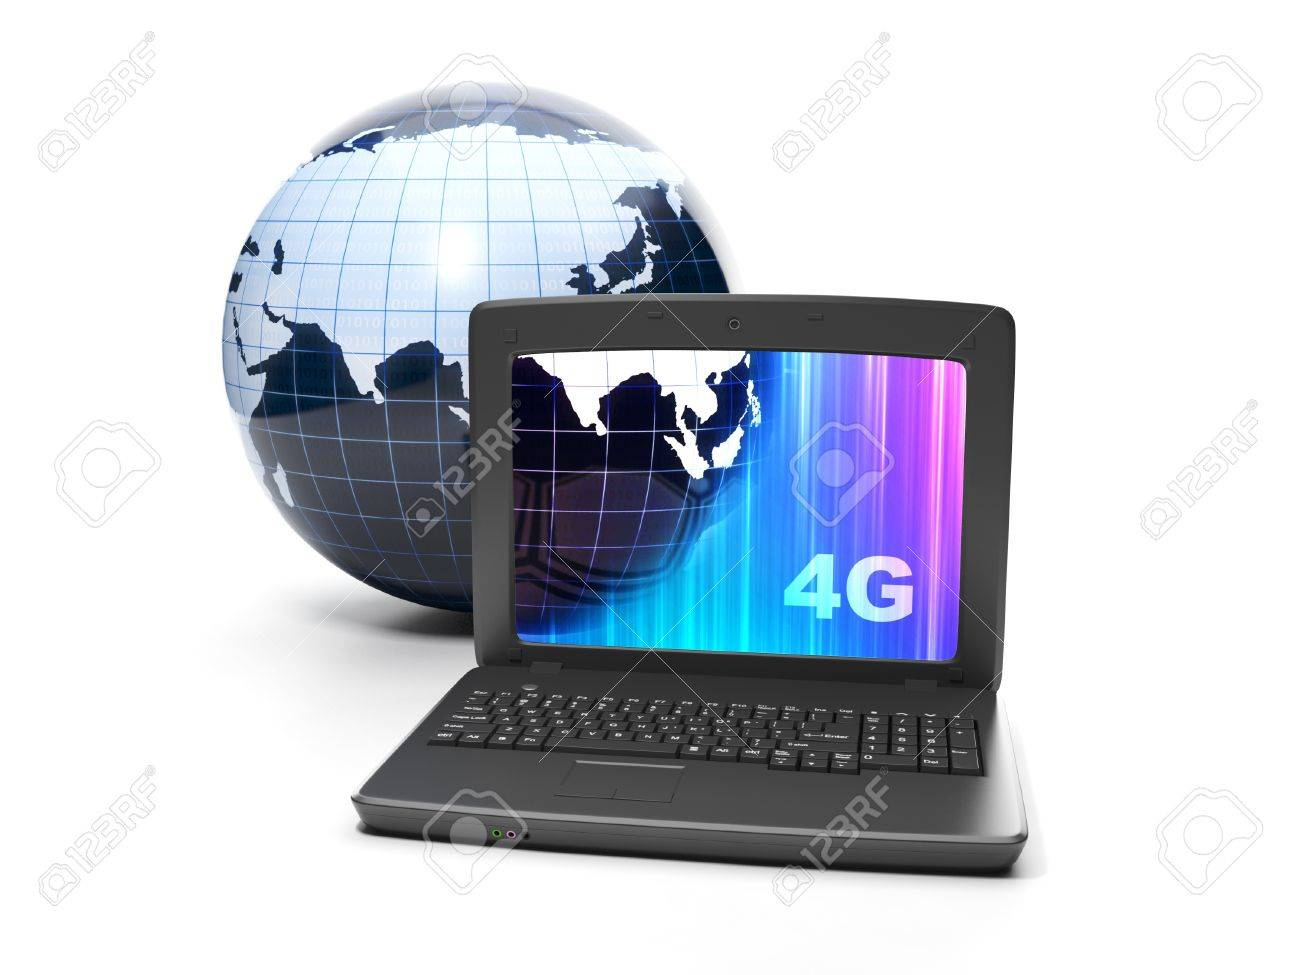 Internet technology. 4g internet connection speed. Earth and notebook close-up on white background Stock Photo - 17365543